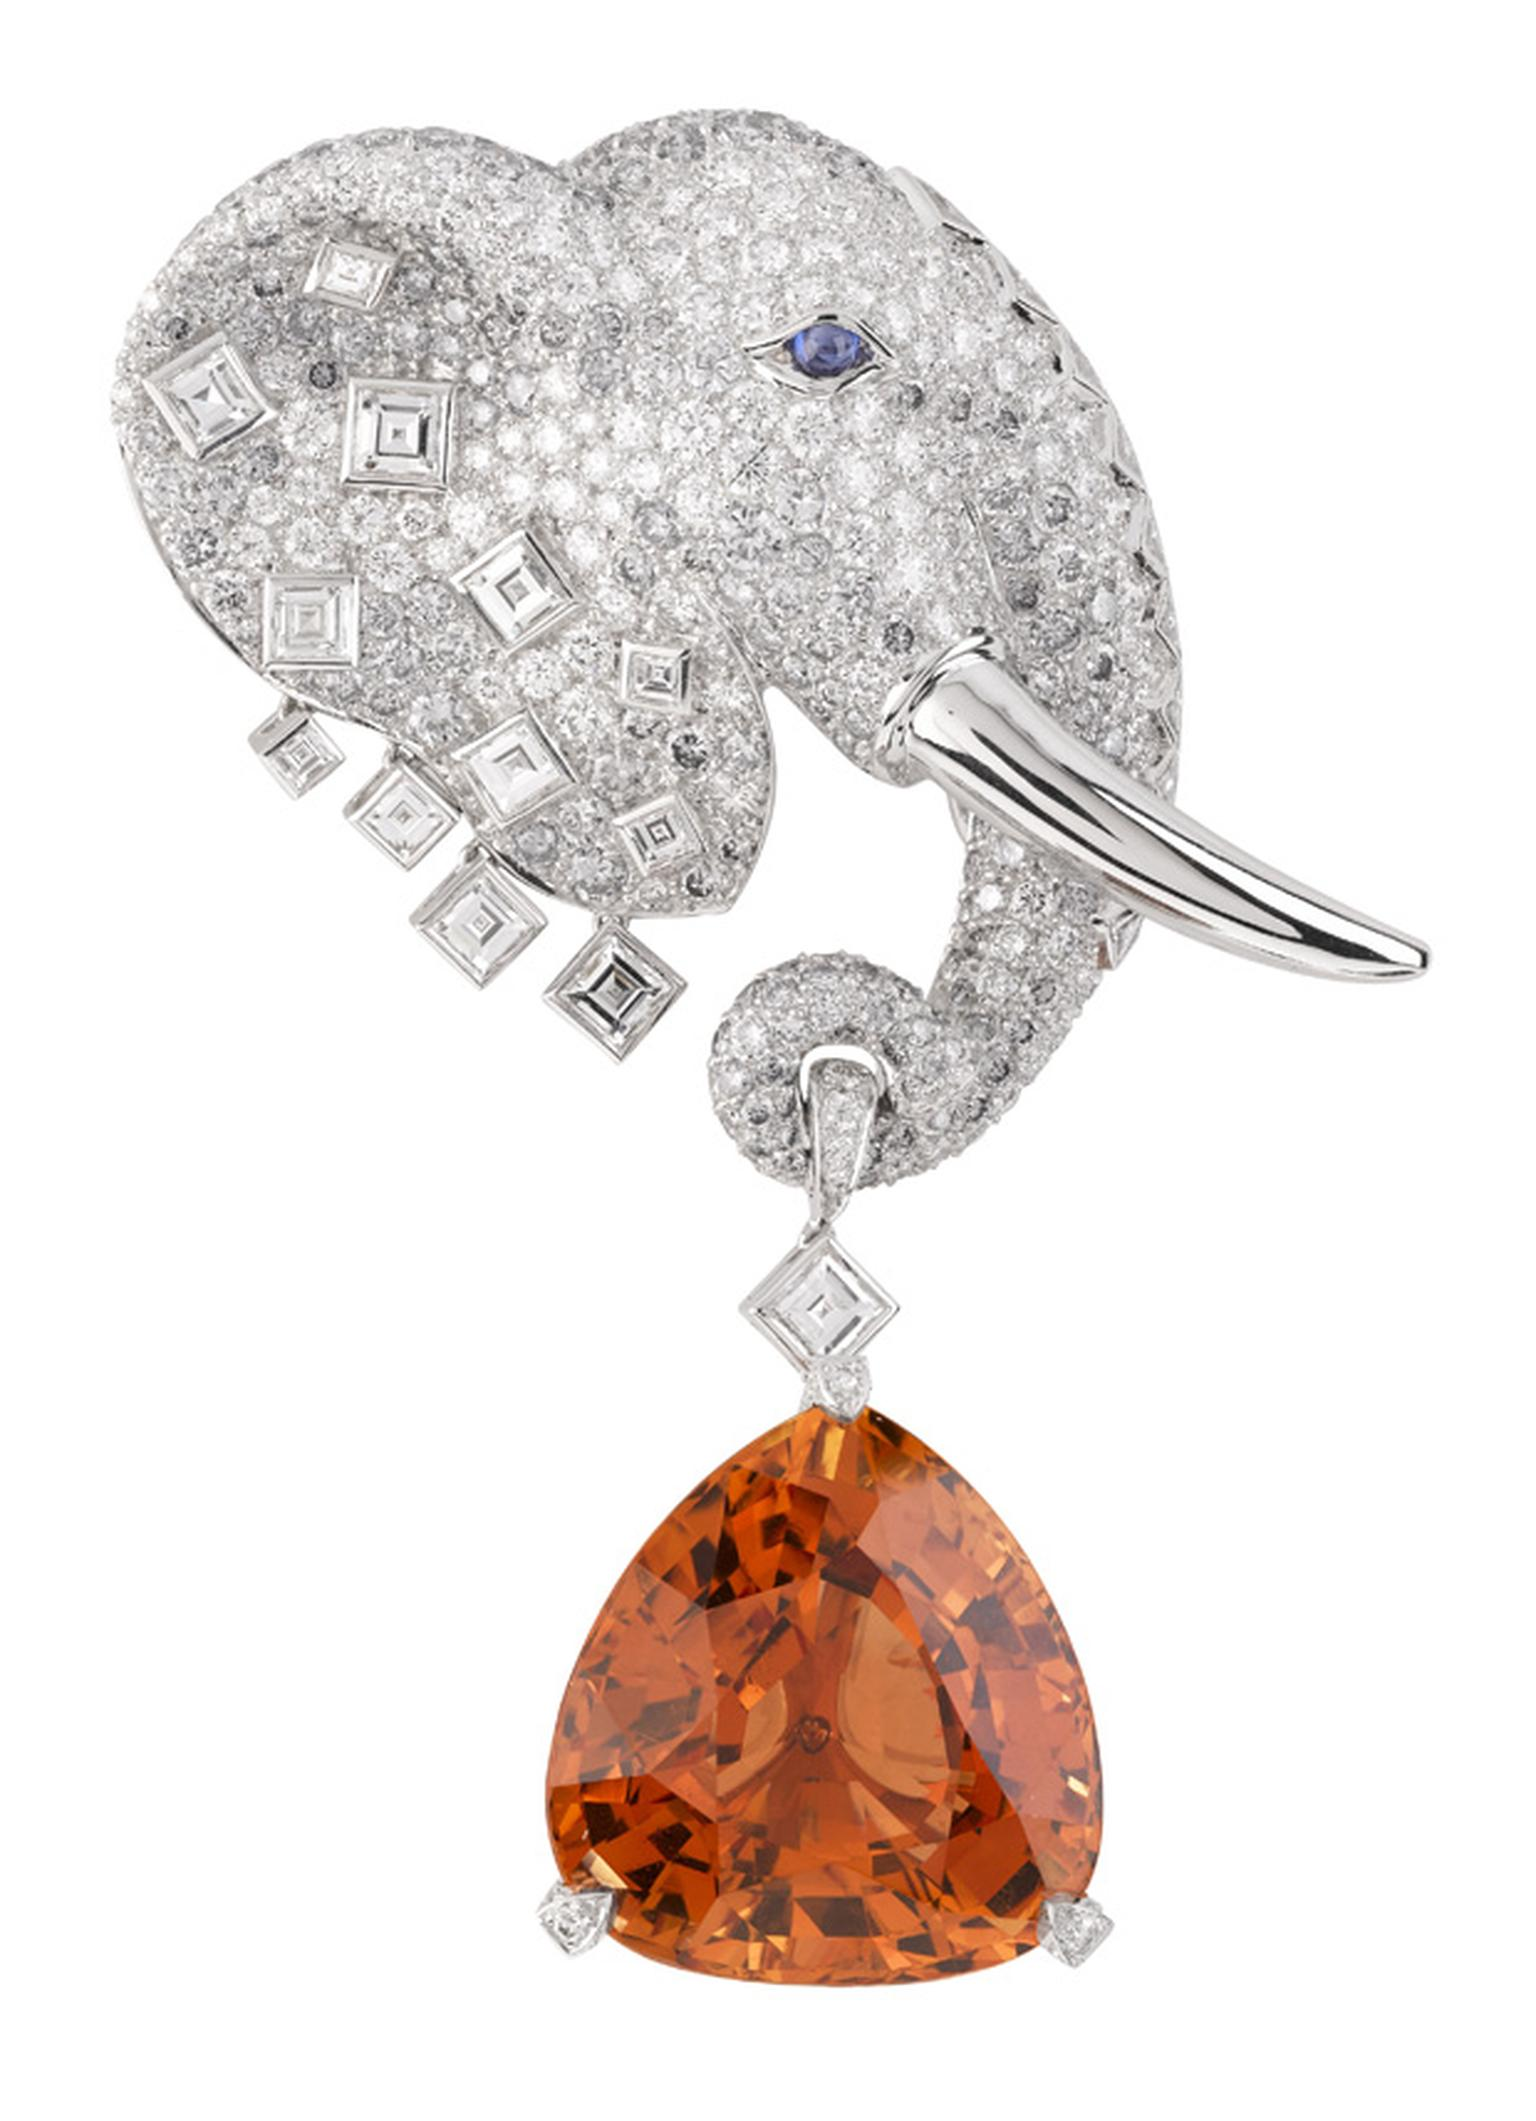 Van Cleef & Arpels Les Voyages Extraordinaires Maximus clip with Imperial Topaz